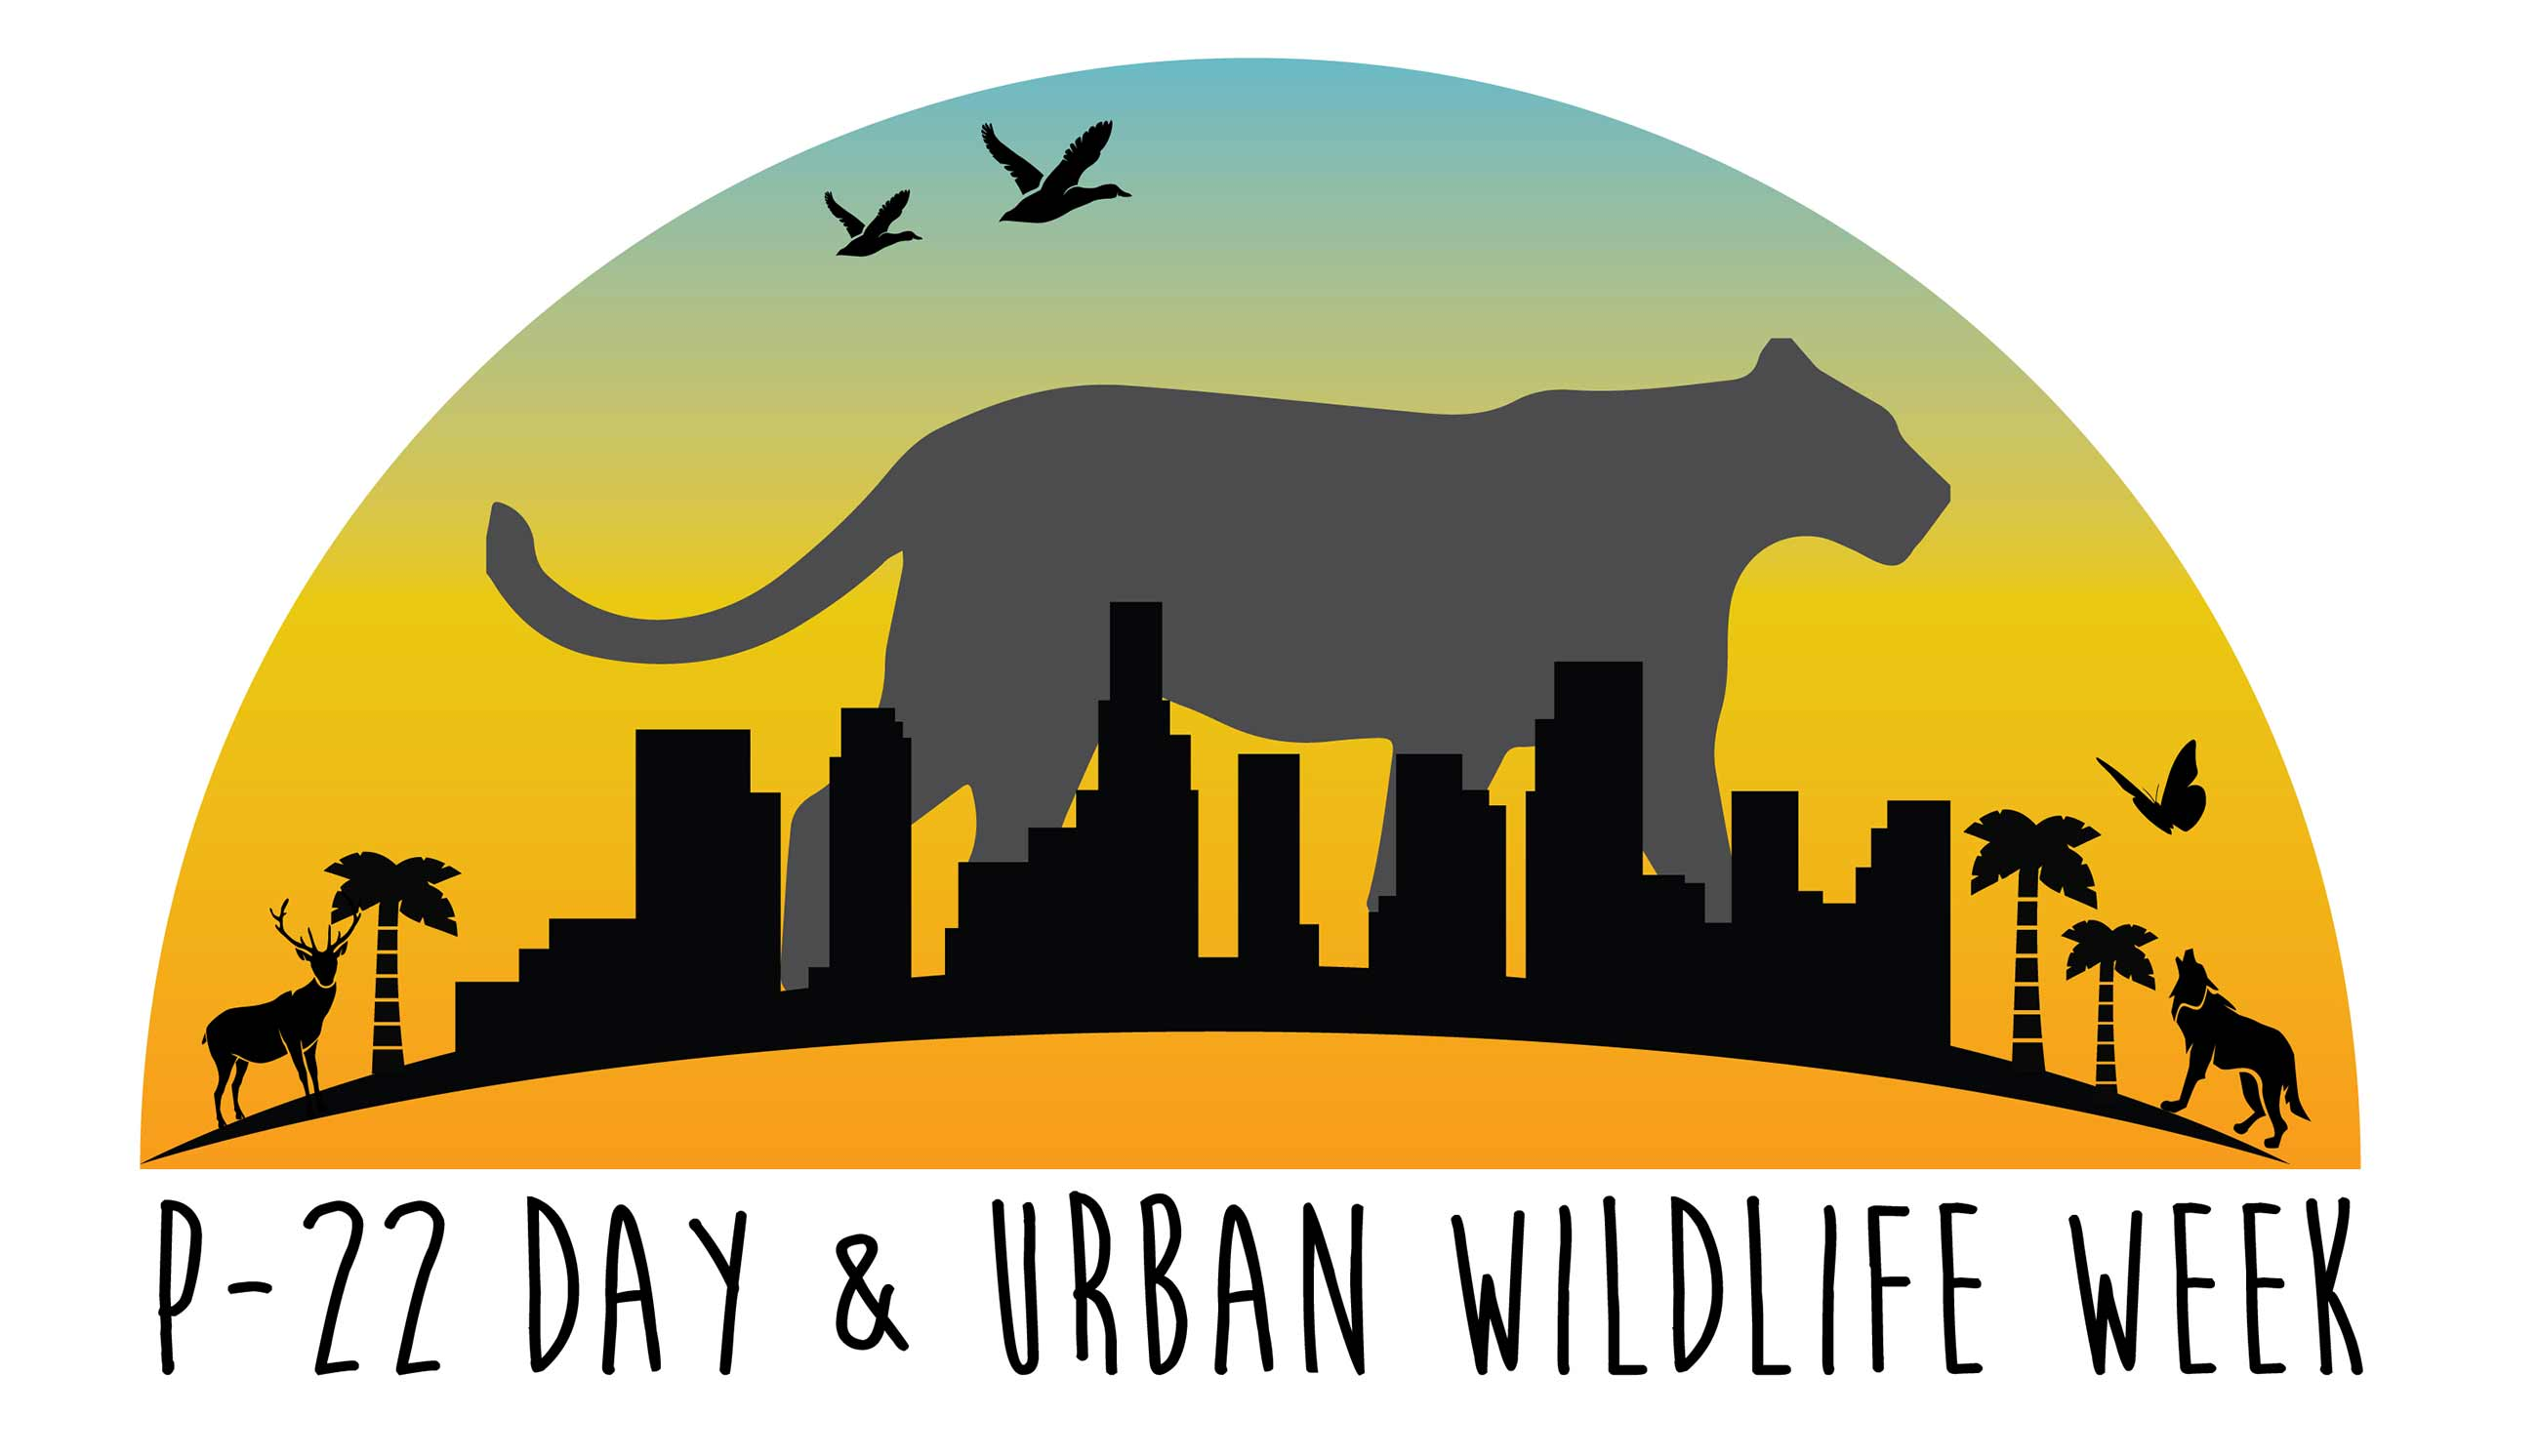 P 22 Day and Urban Wildlife Week